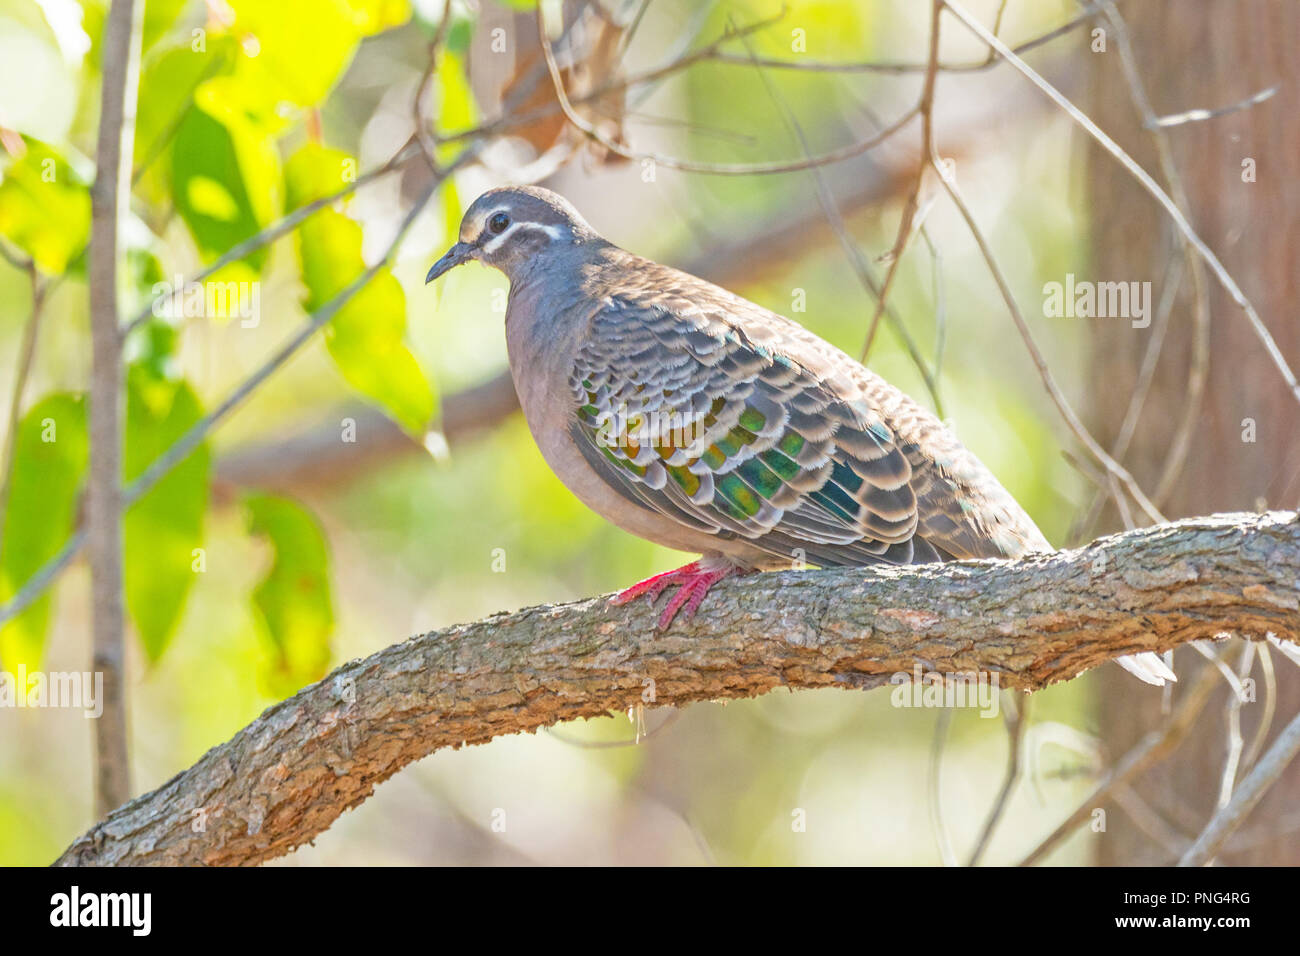 The Common Bronzewing (Phaps chalcoptera) is a species of medium-sized, heavily built pigeon native to Australia. - Stock Image